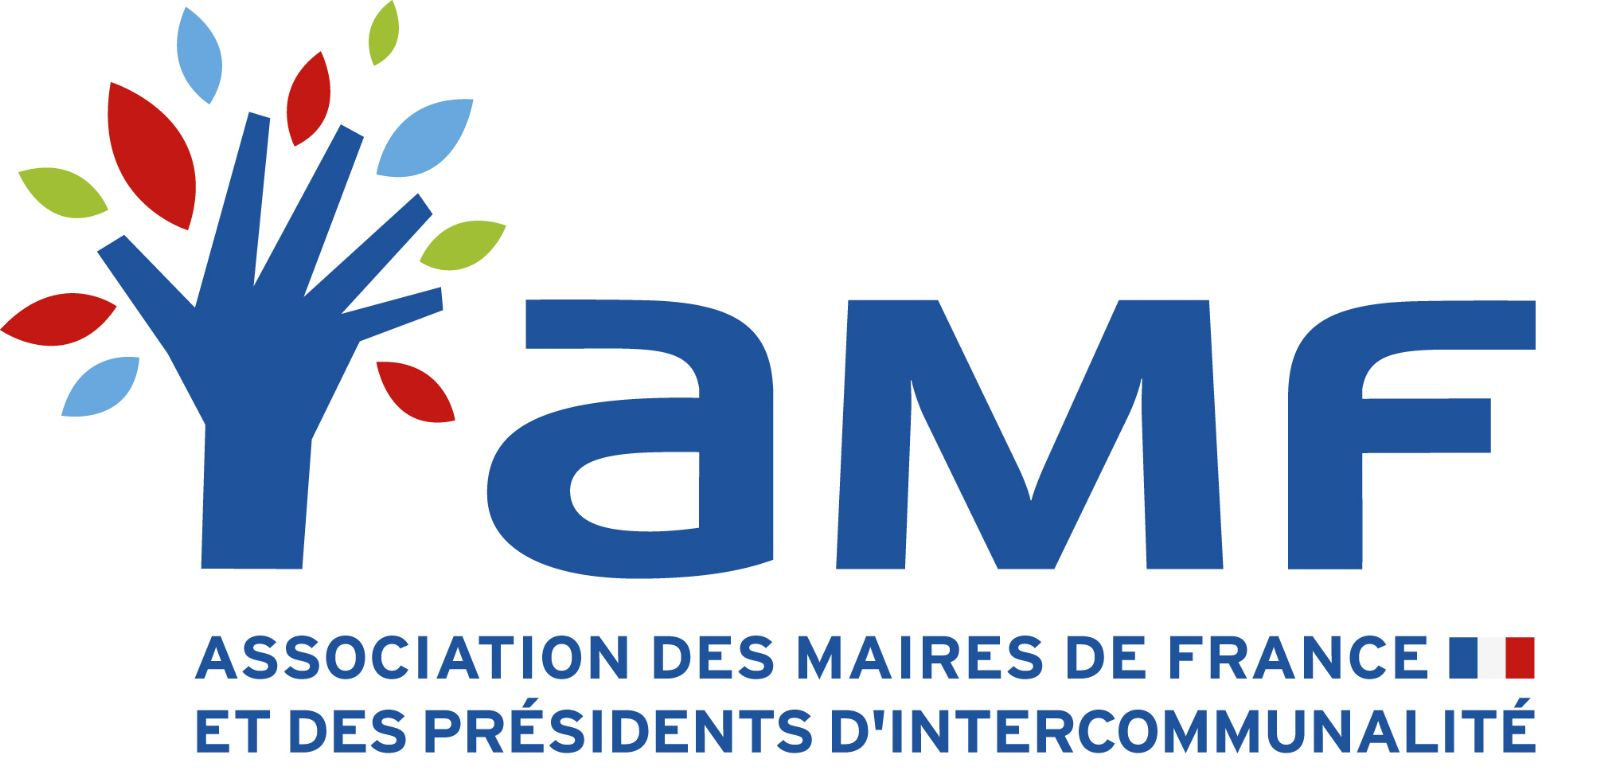 Merci à l'Association des Maires de France